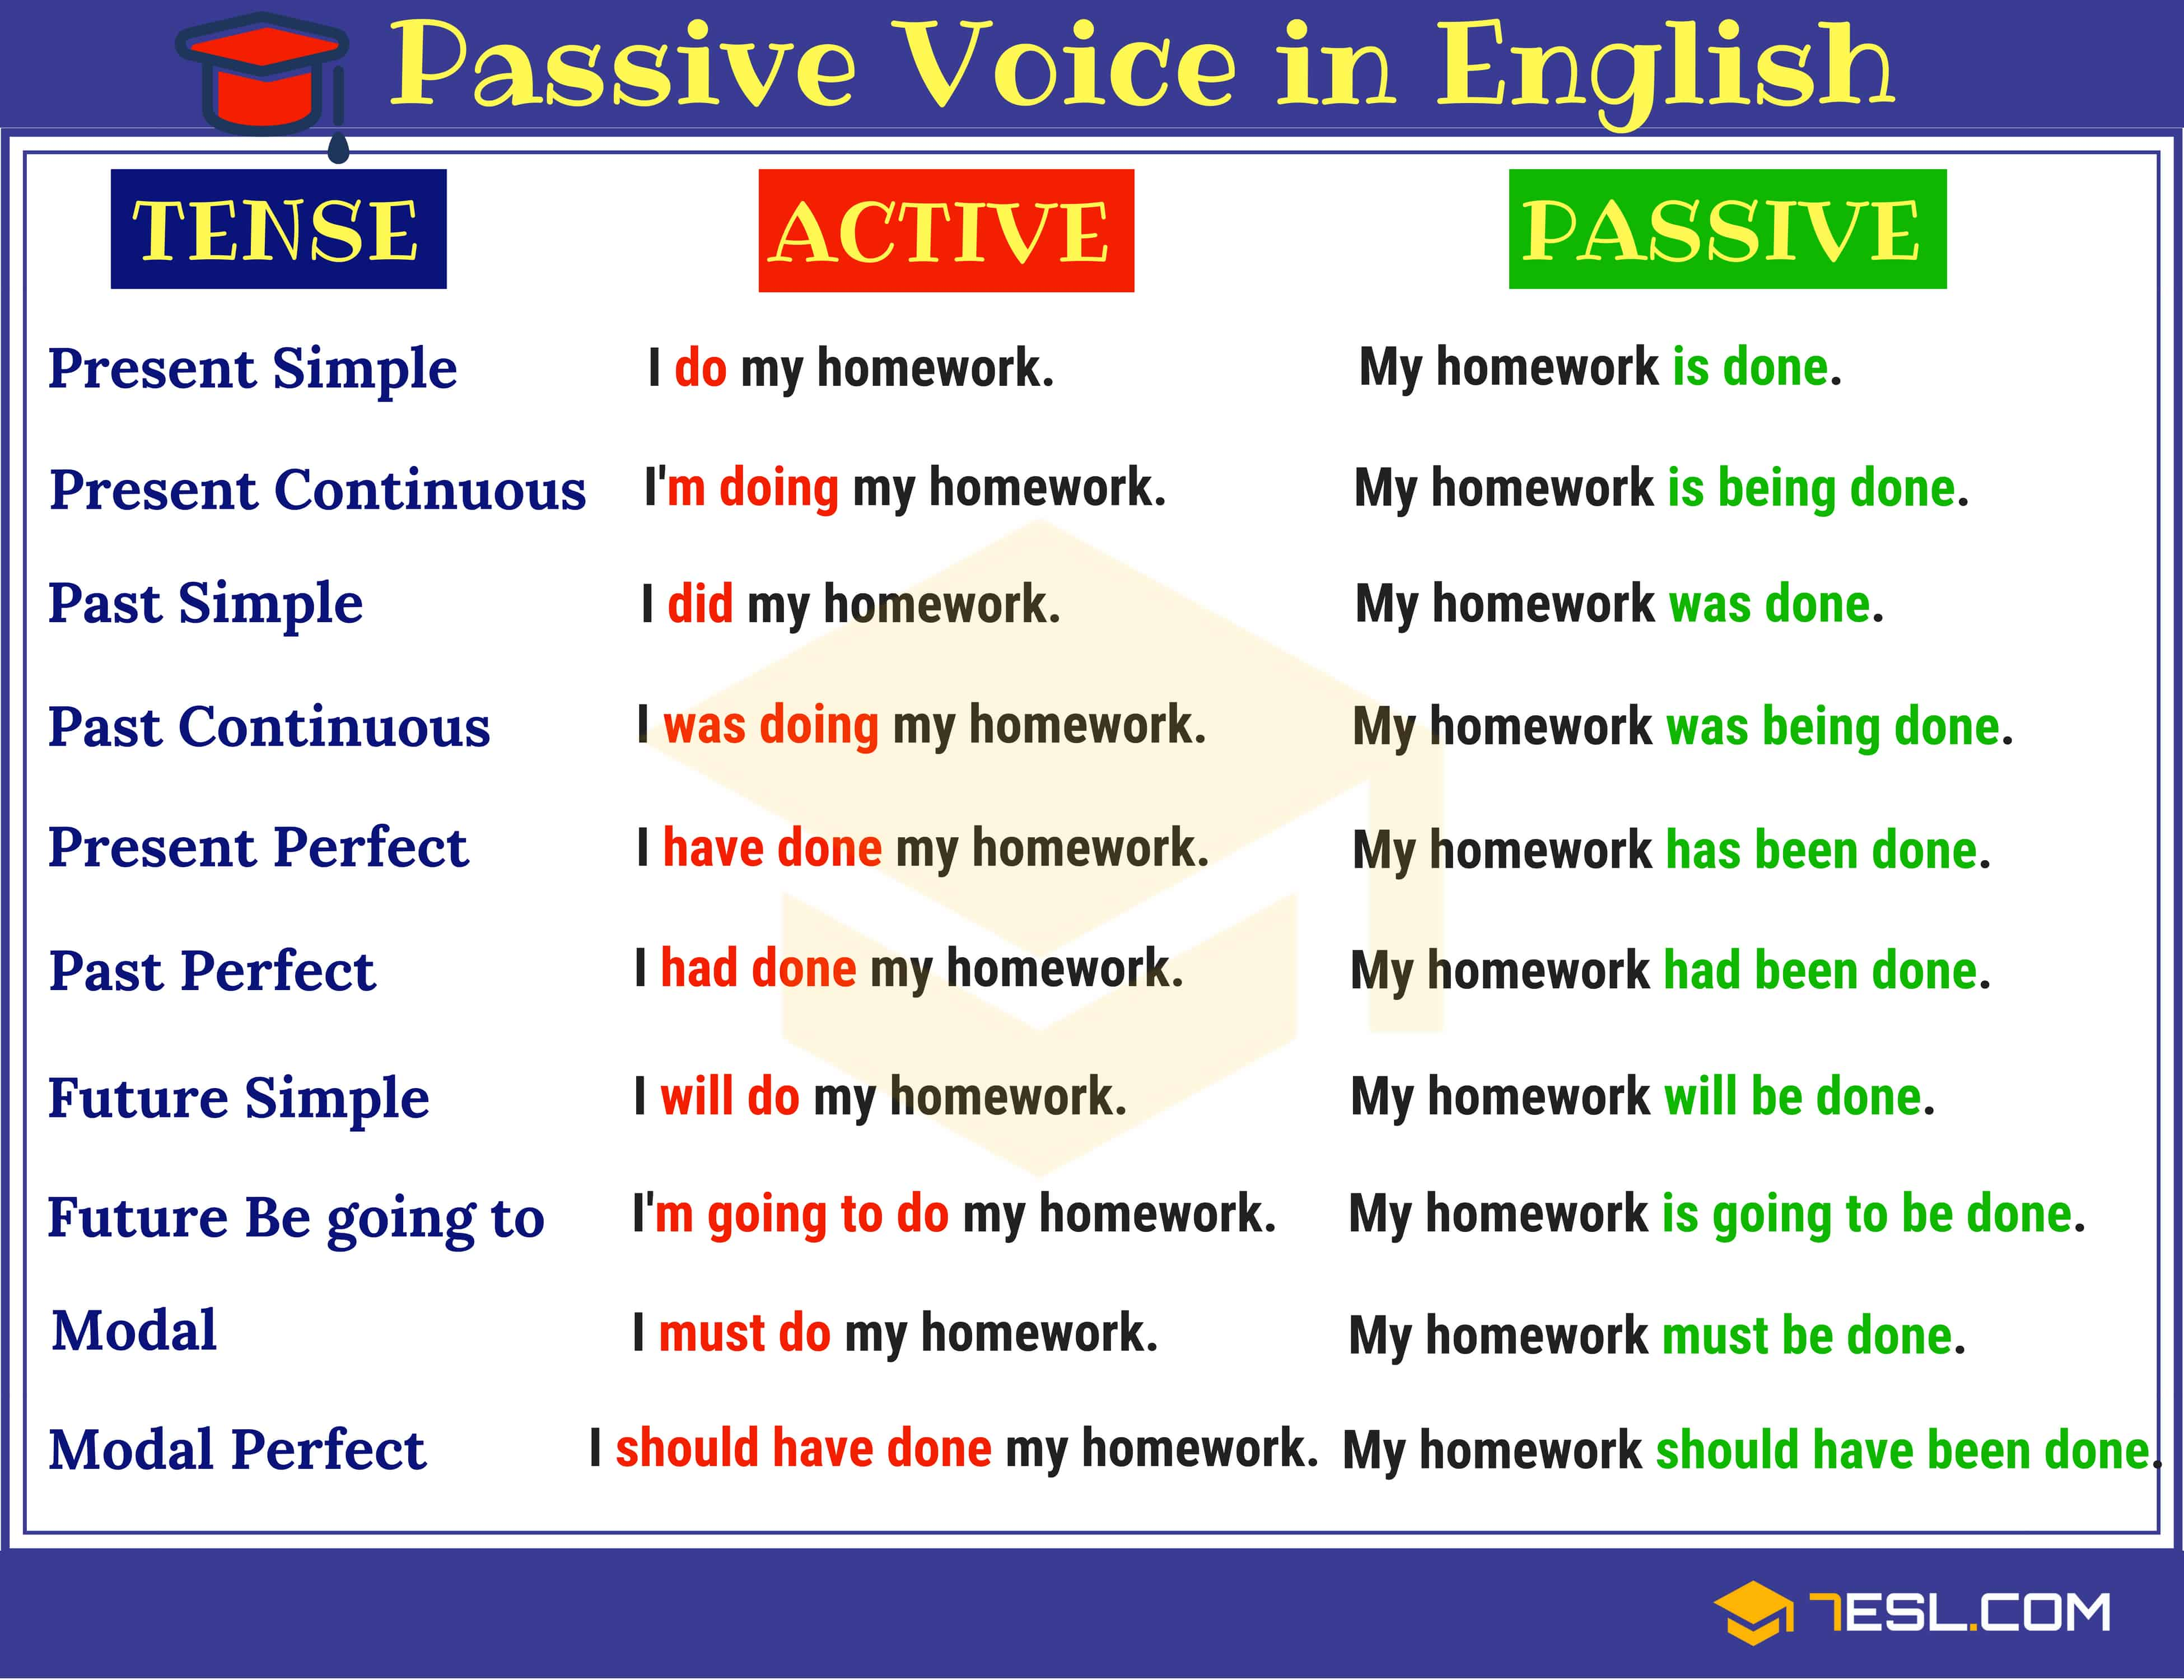 Examples of active and passive voice for different tenses in English